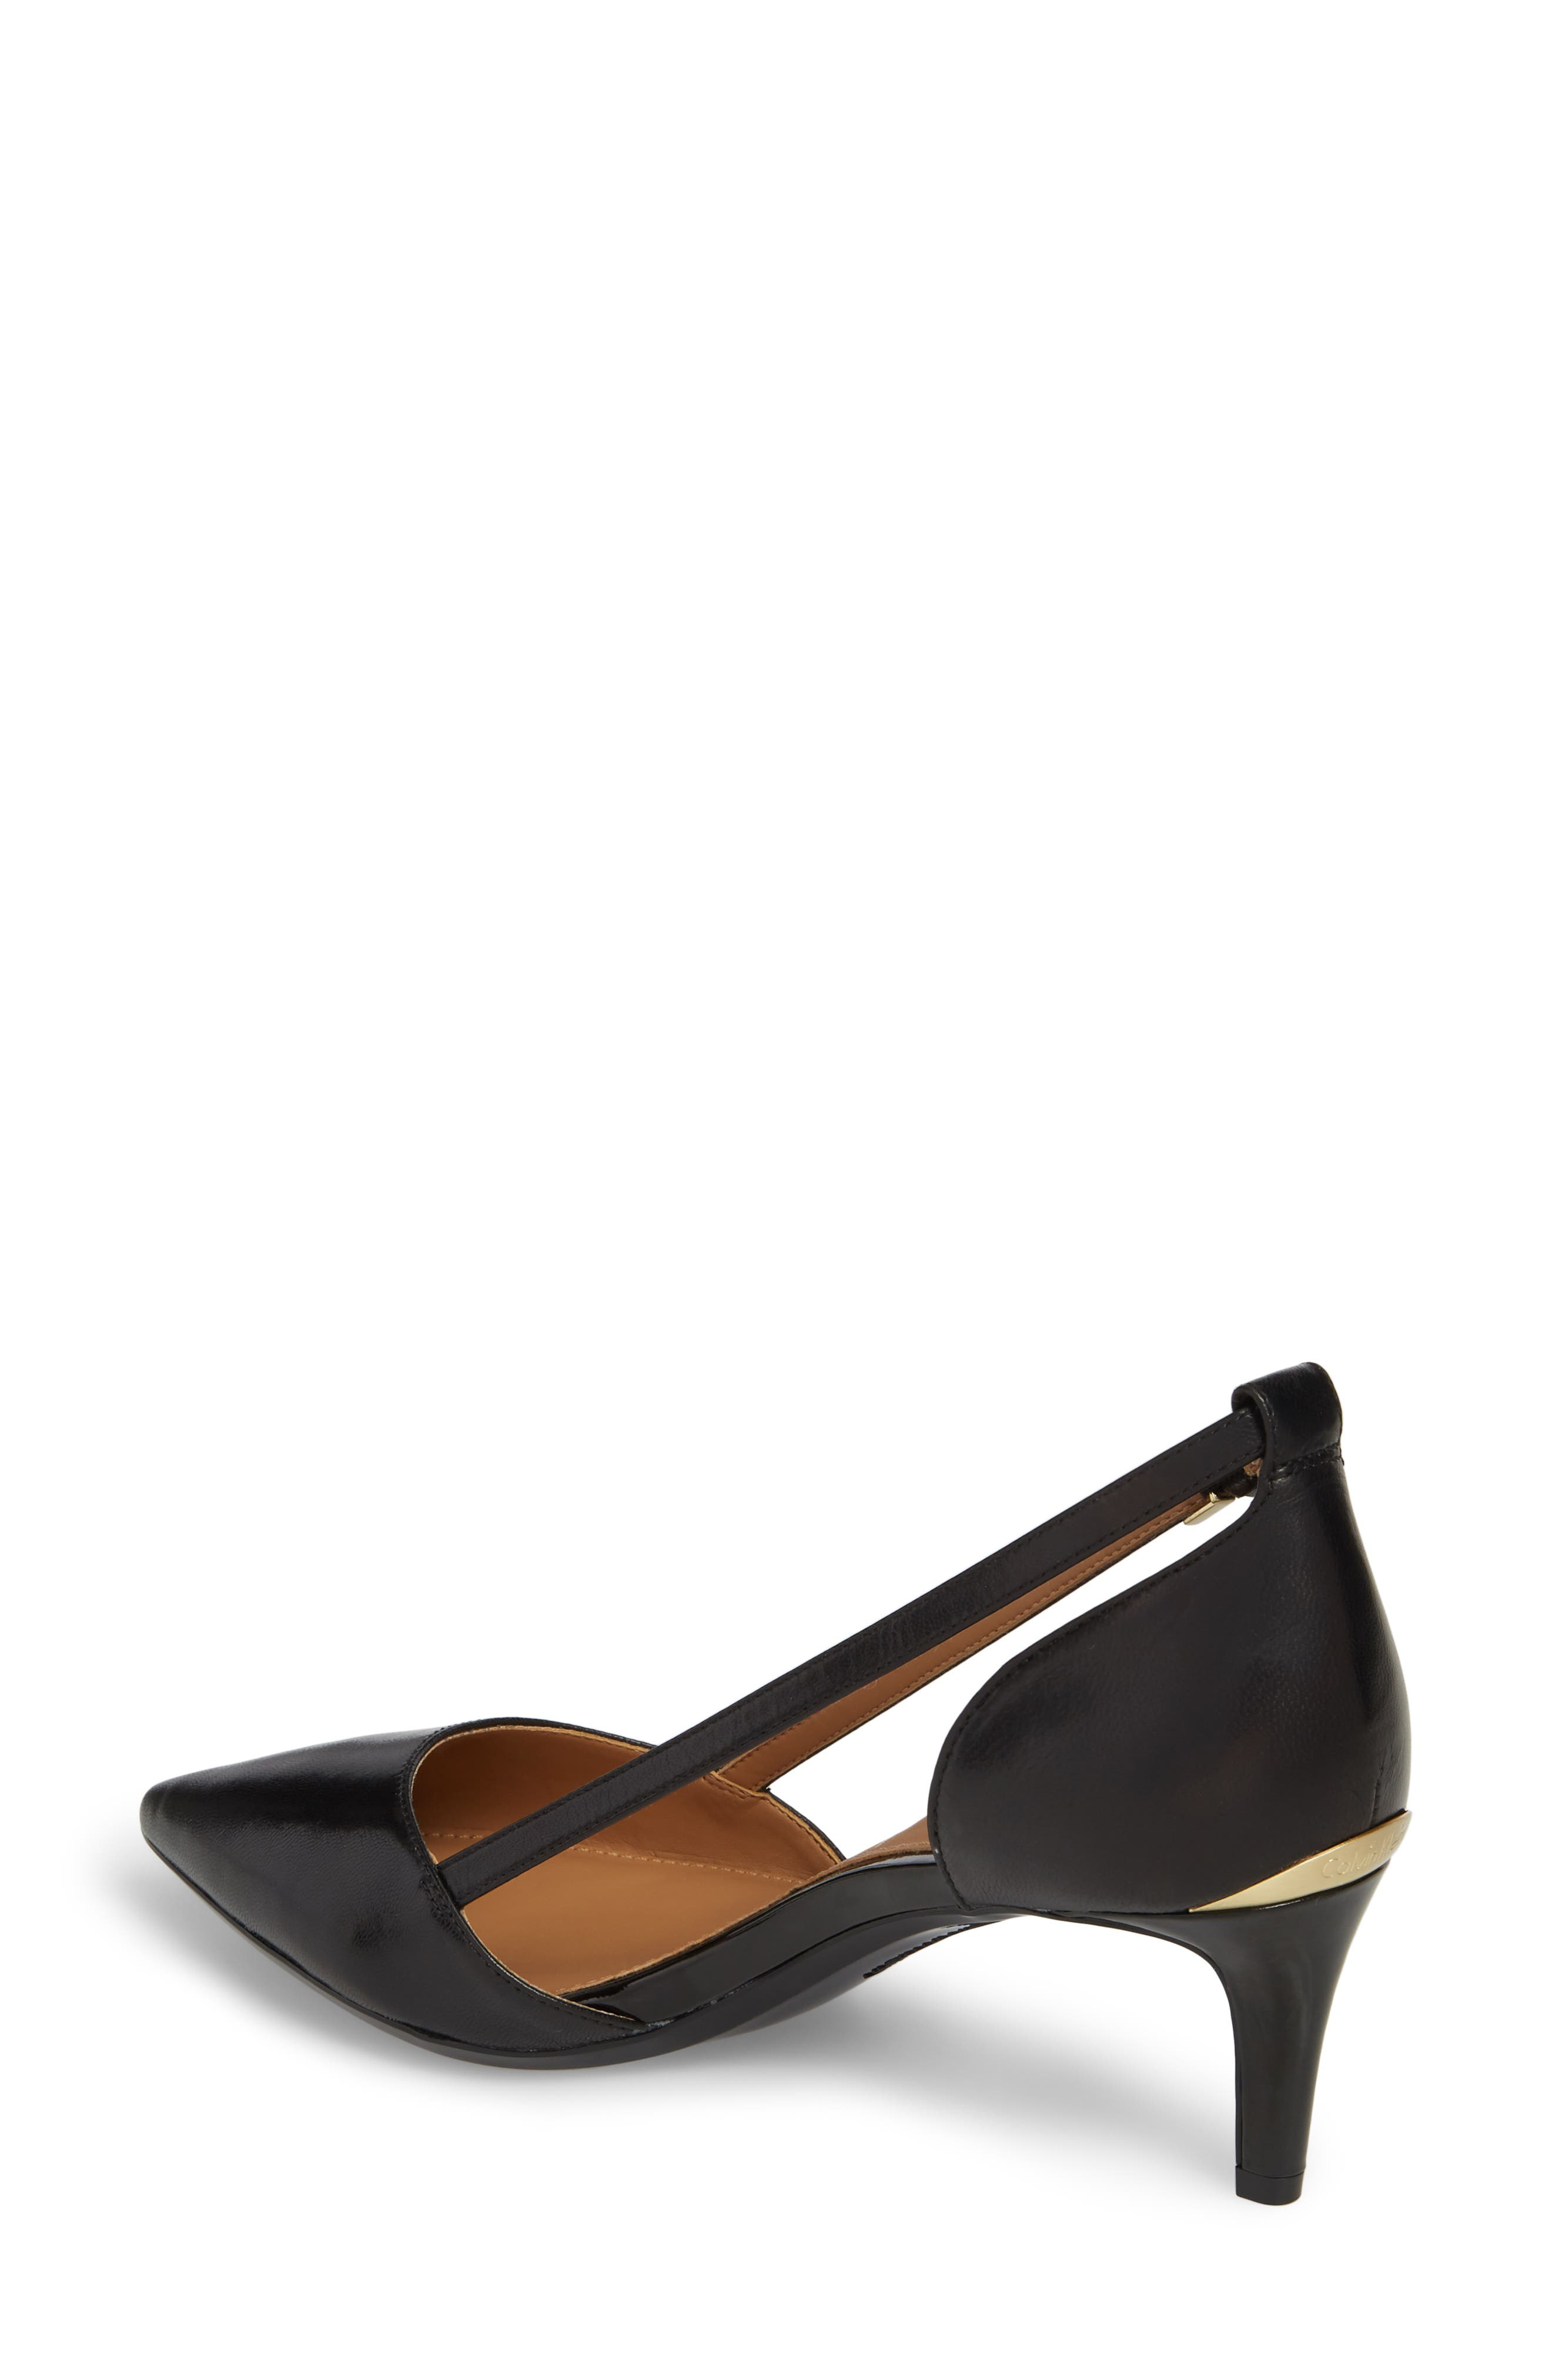 CALVIN KLEIN, Pashka Strappy Open Sided Pump, Alternate thumbnail 2, color, 001